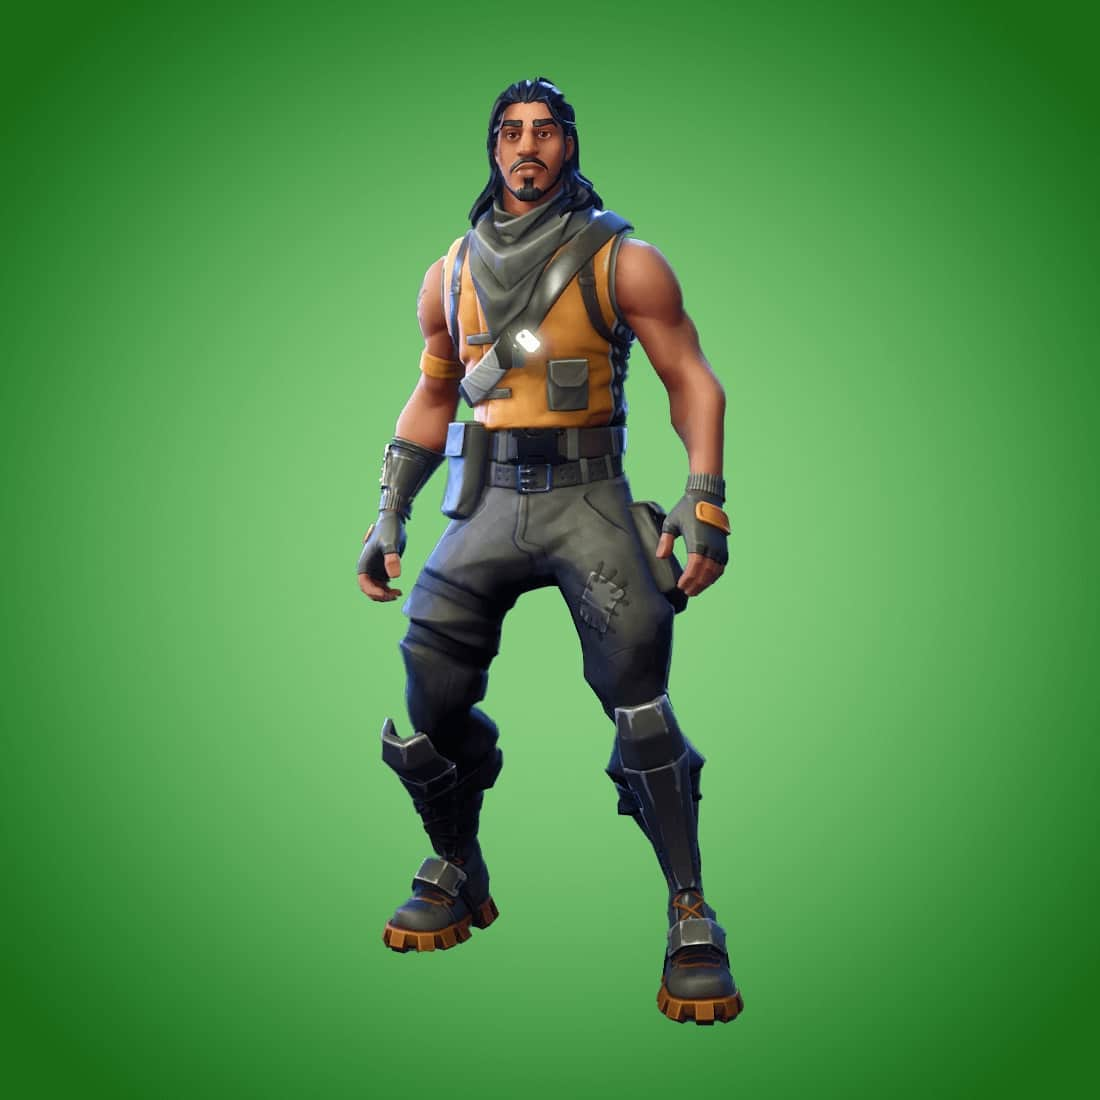 All Fortnite Skins & Characters August 2018 - Tech Centurion